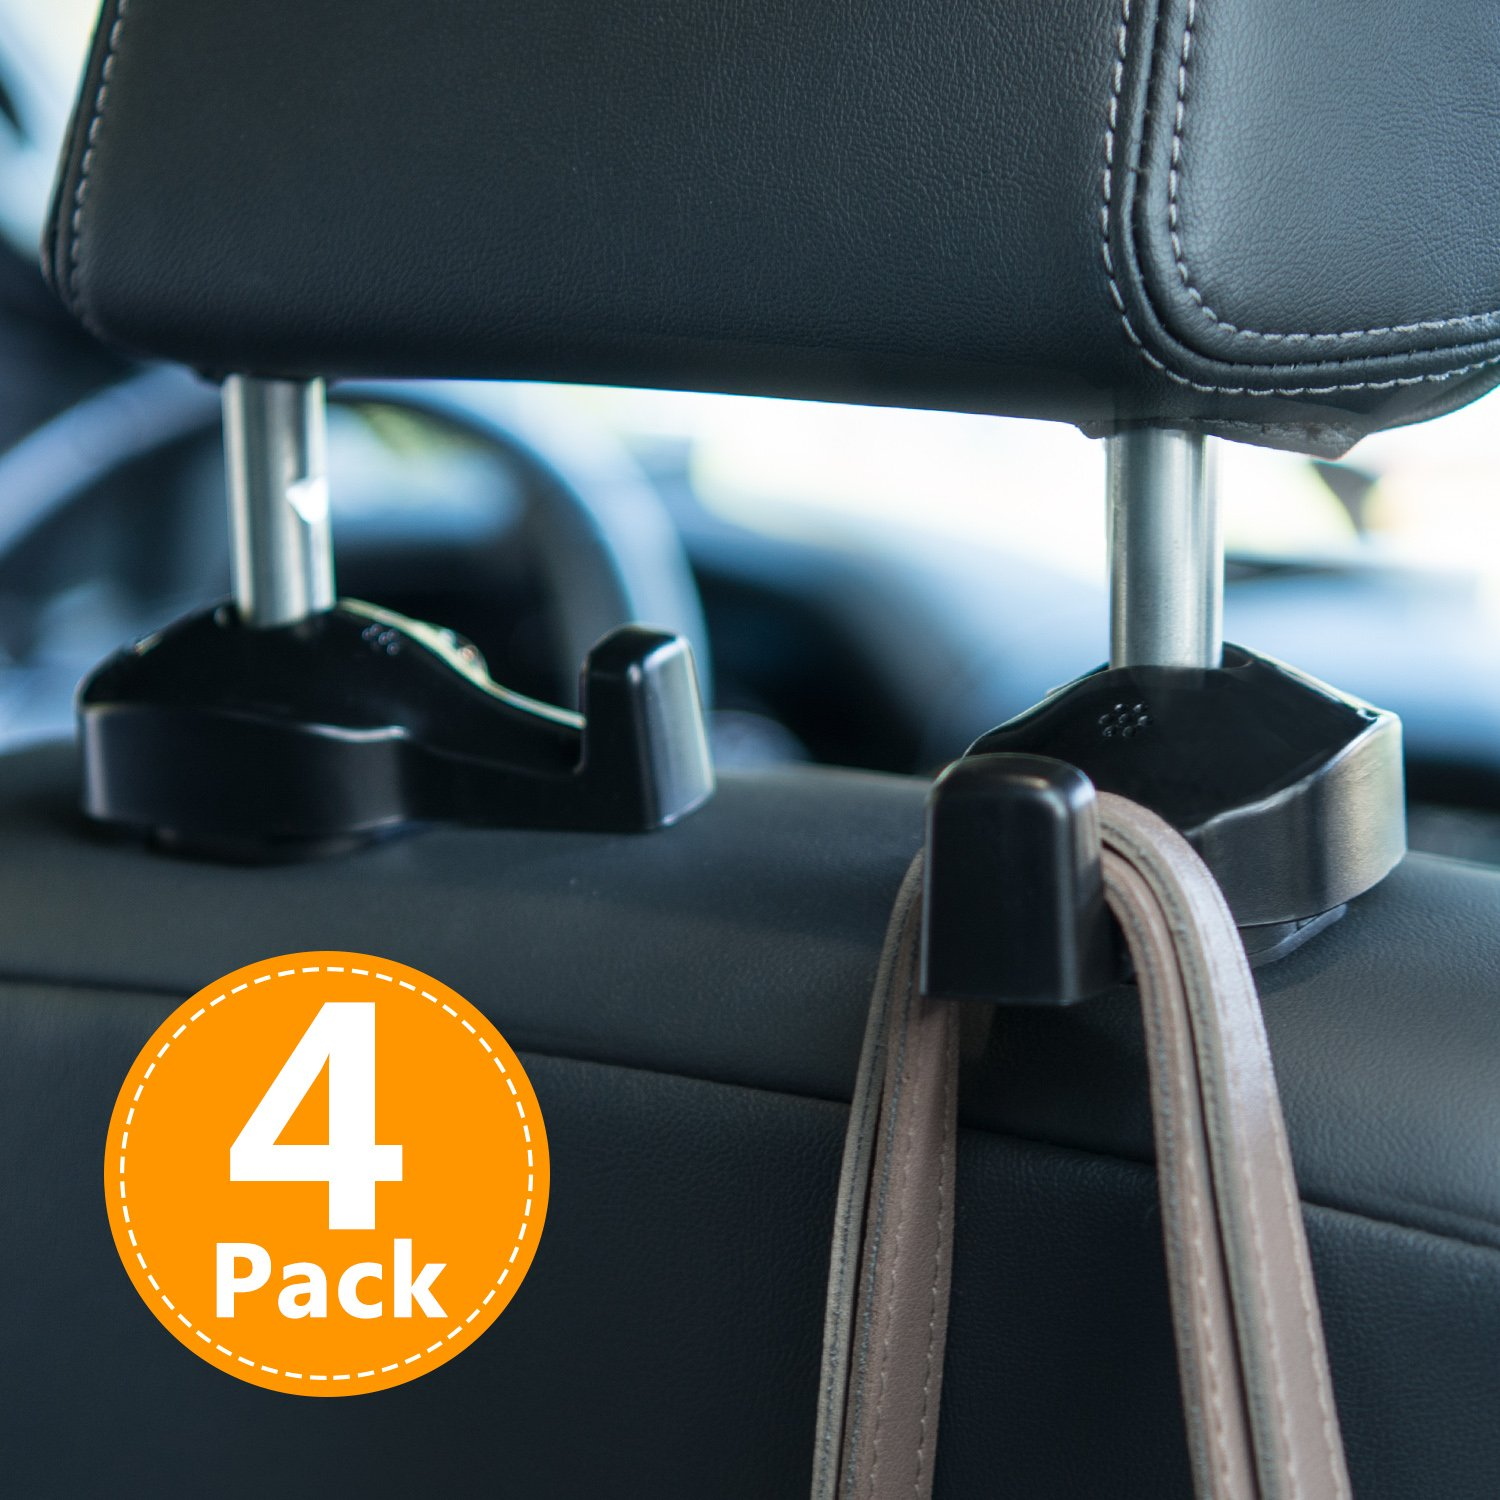 hacks to keep your car organized